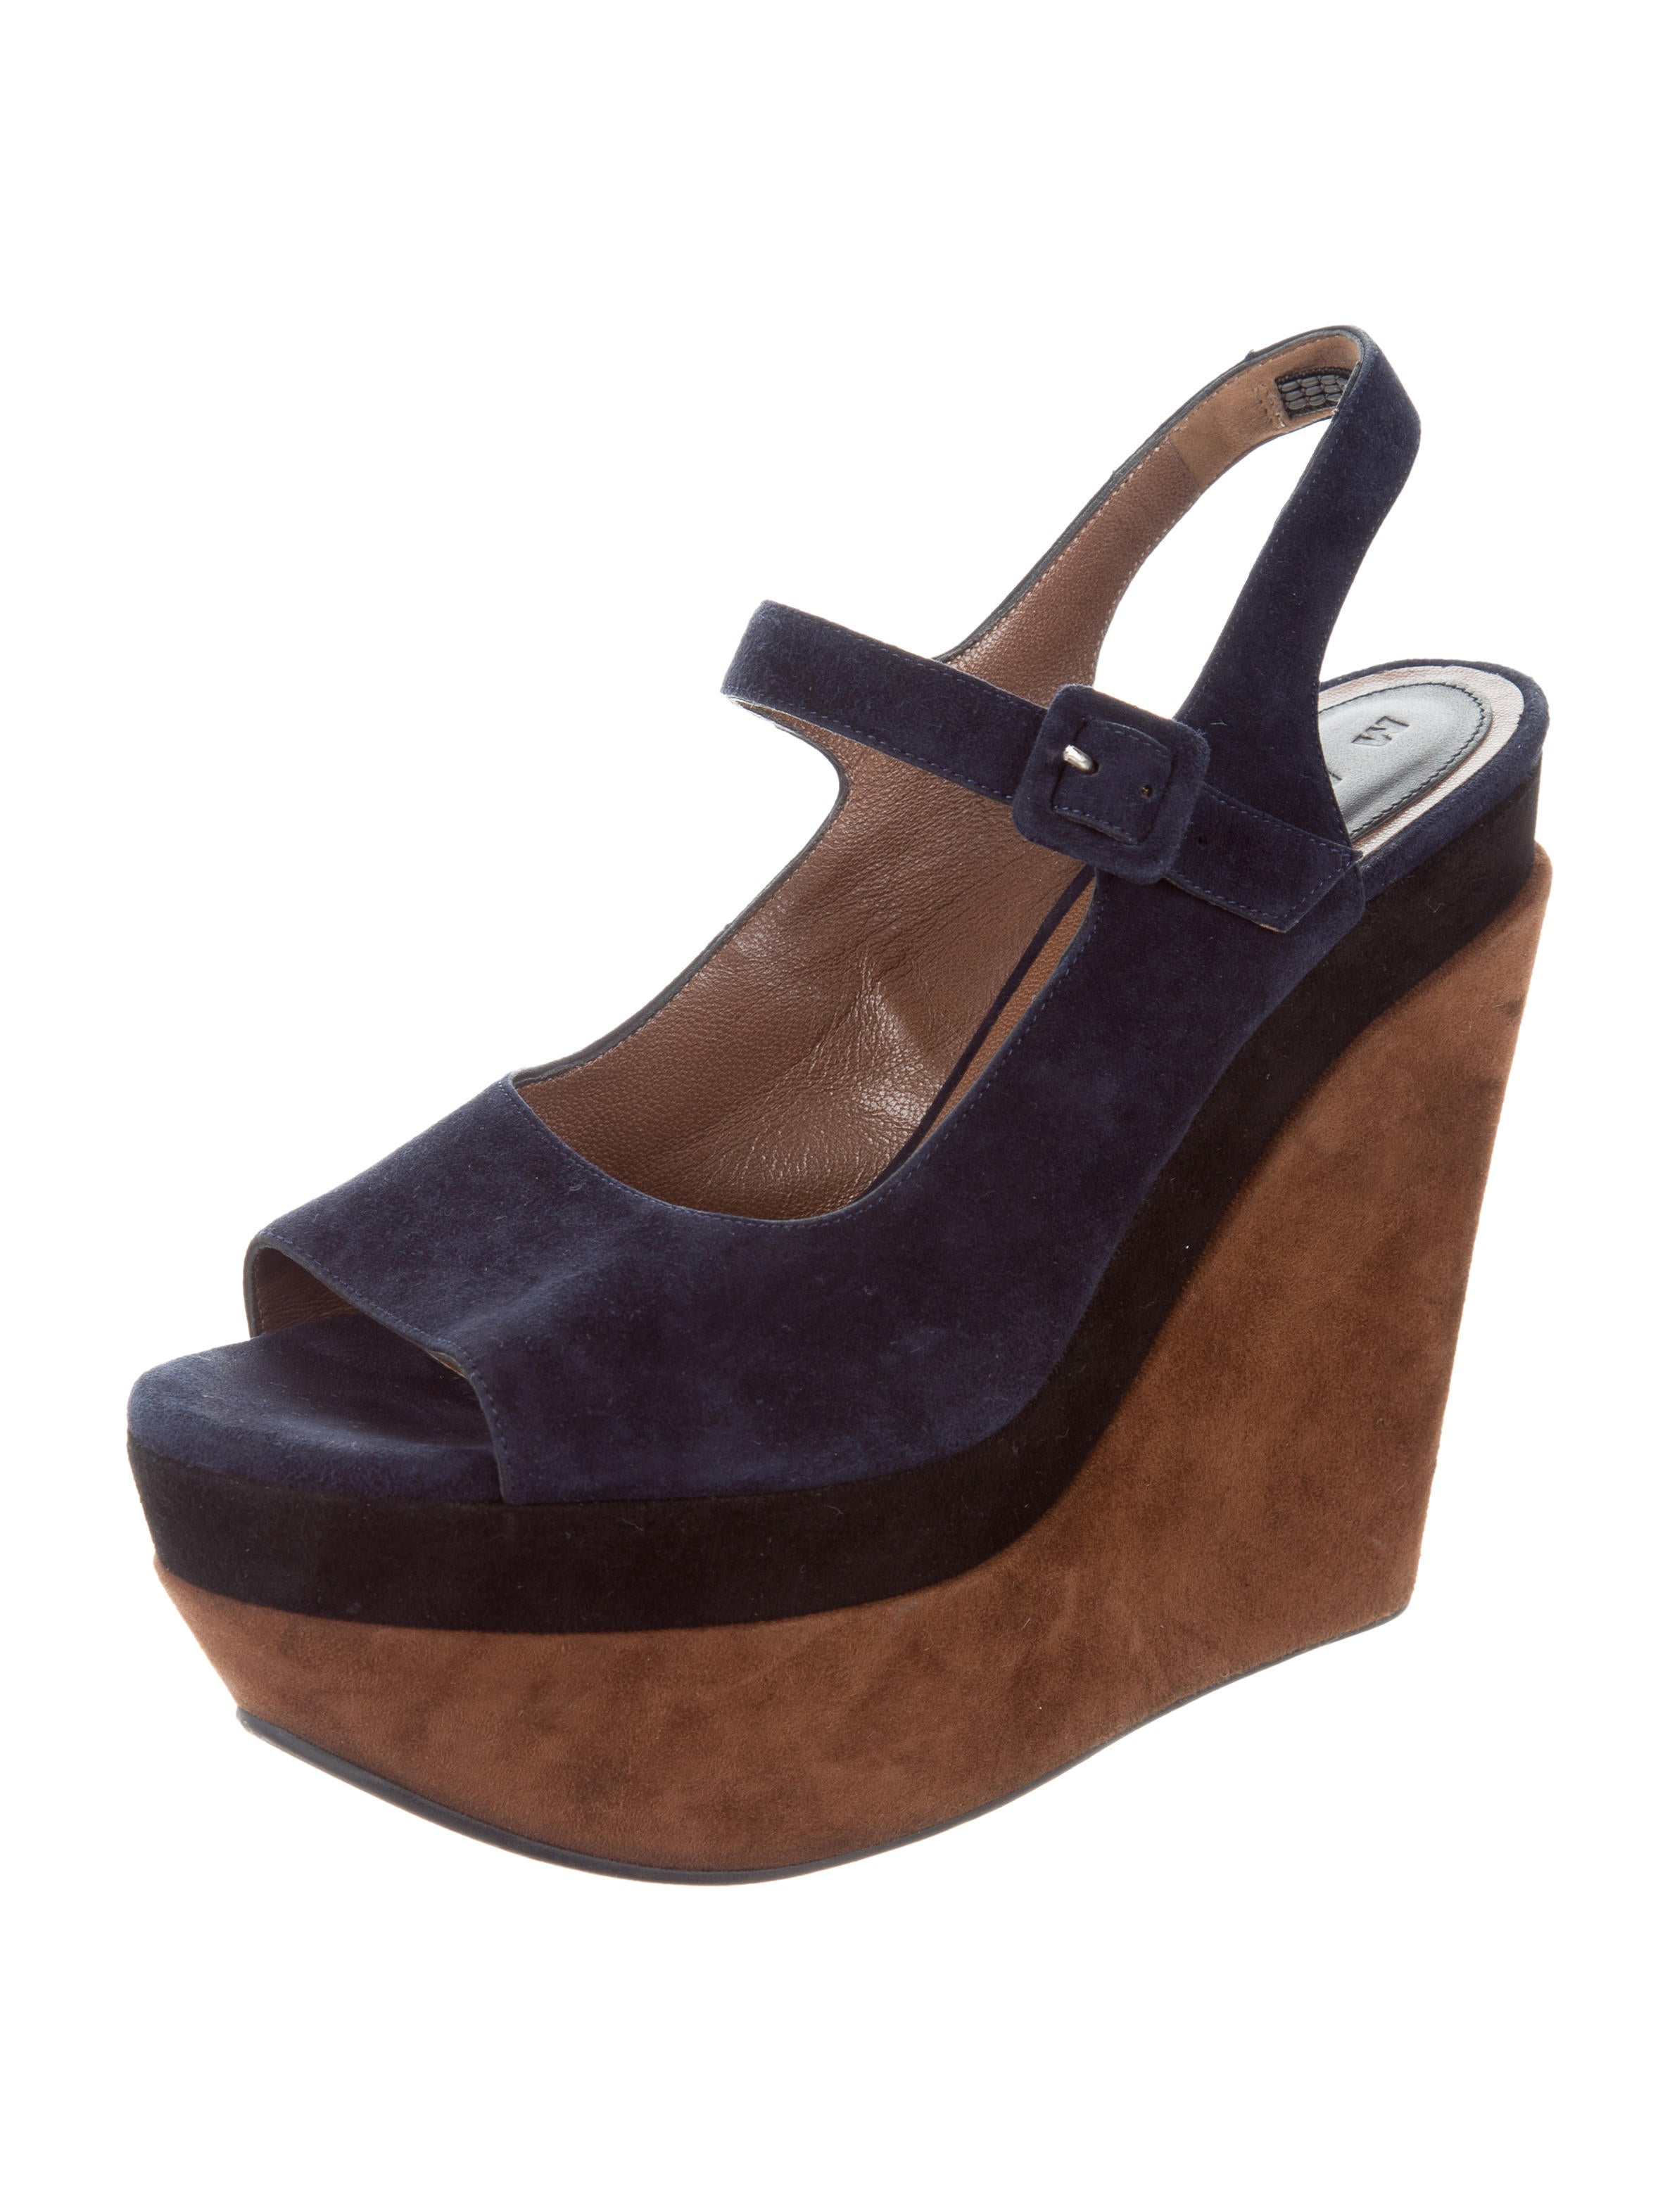 Marni Suede Wedge Pumps